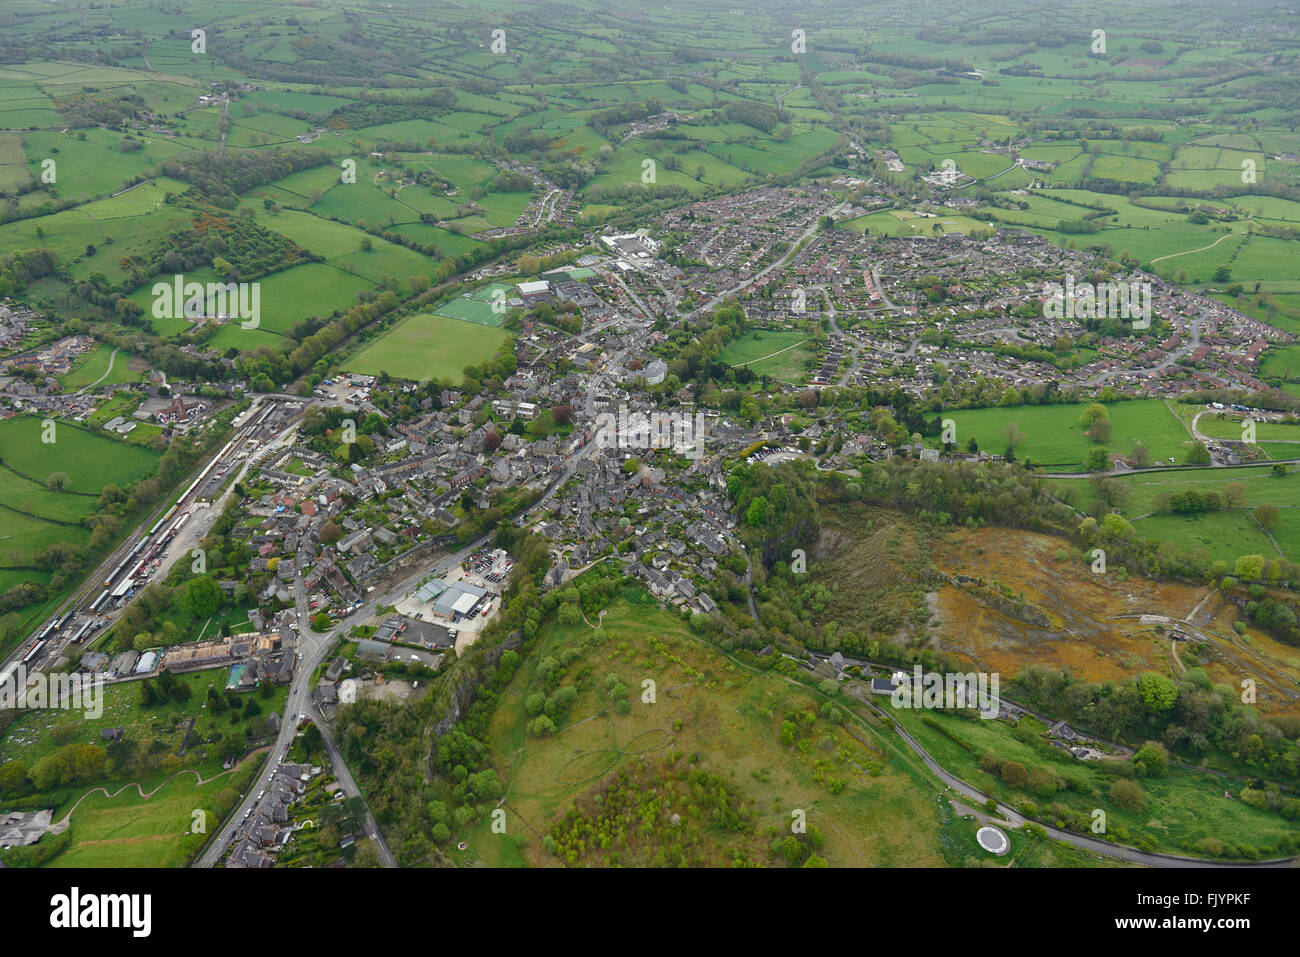 An aerial view of the Derbyshire town of Wirksworth - Stock Image